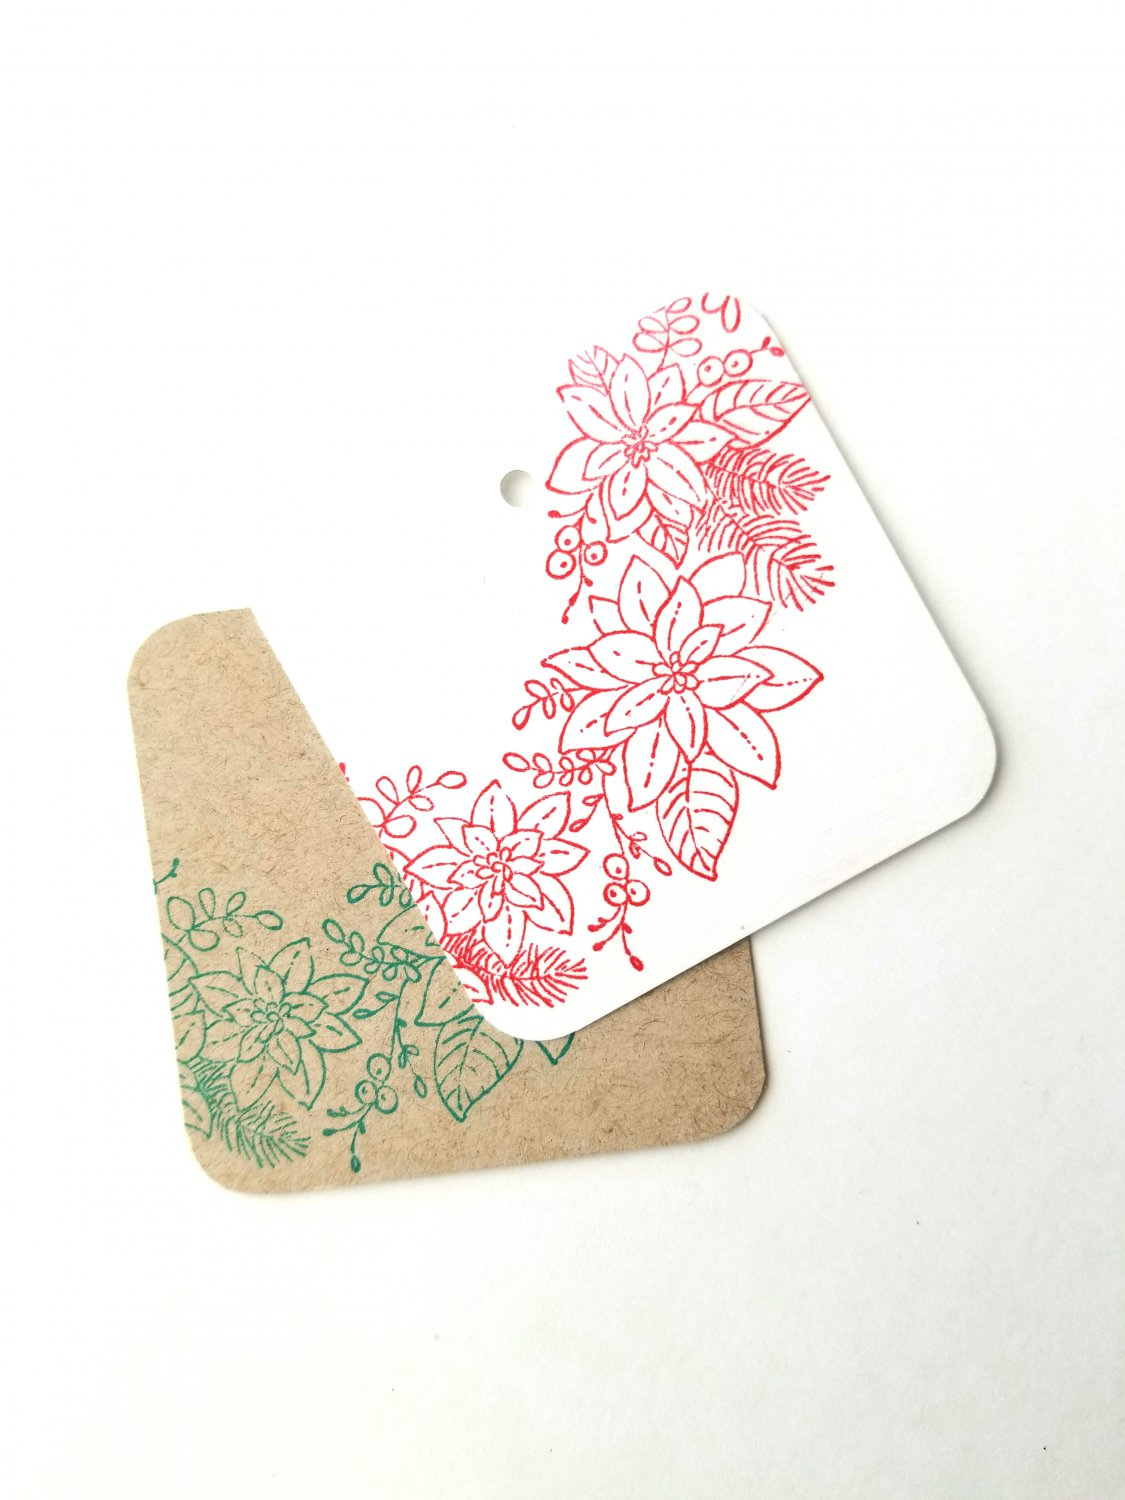 Christmas Holiday Handmade Gift Tags Favor Treat Tags Classy Vintage Rustic Floral Tag Set of 10